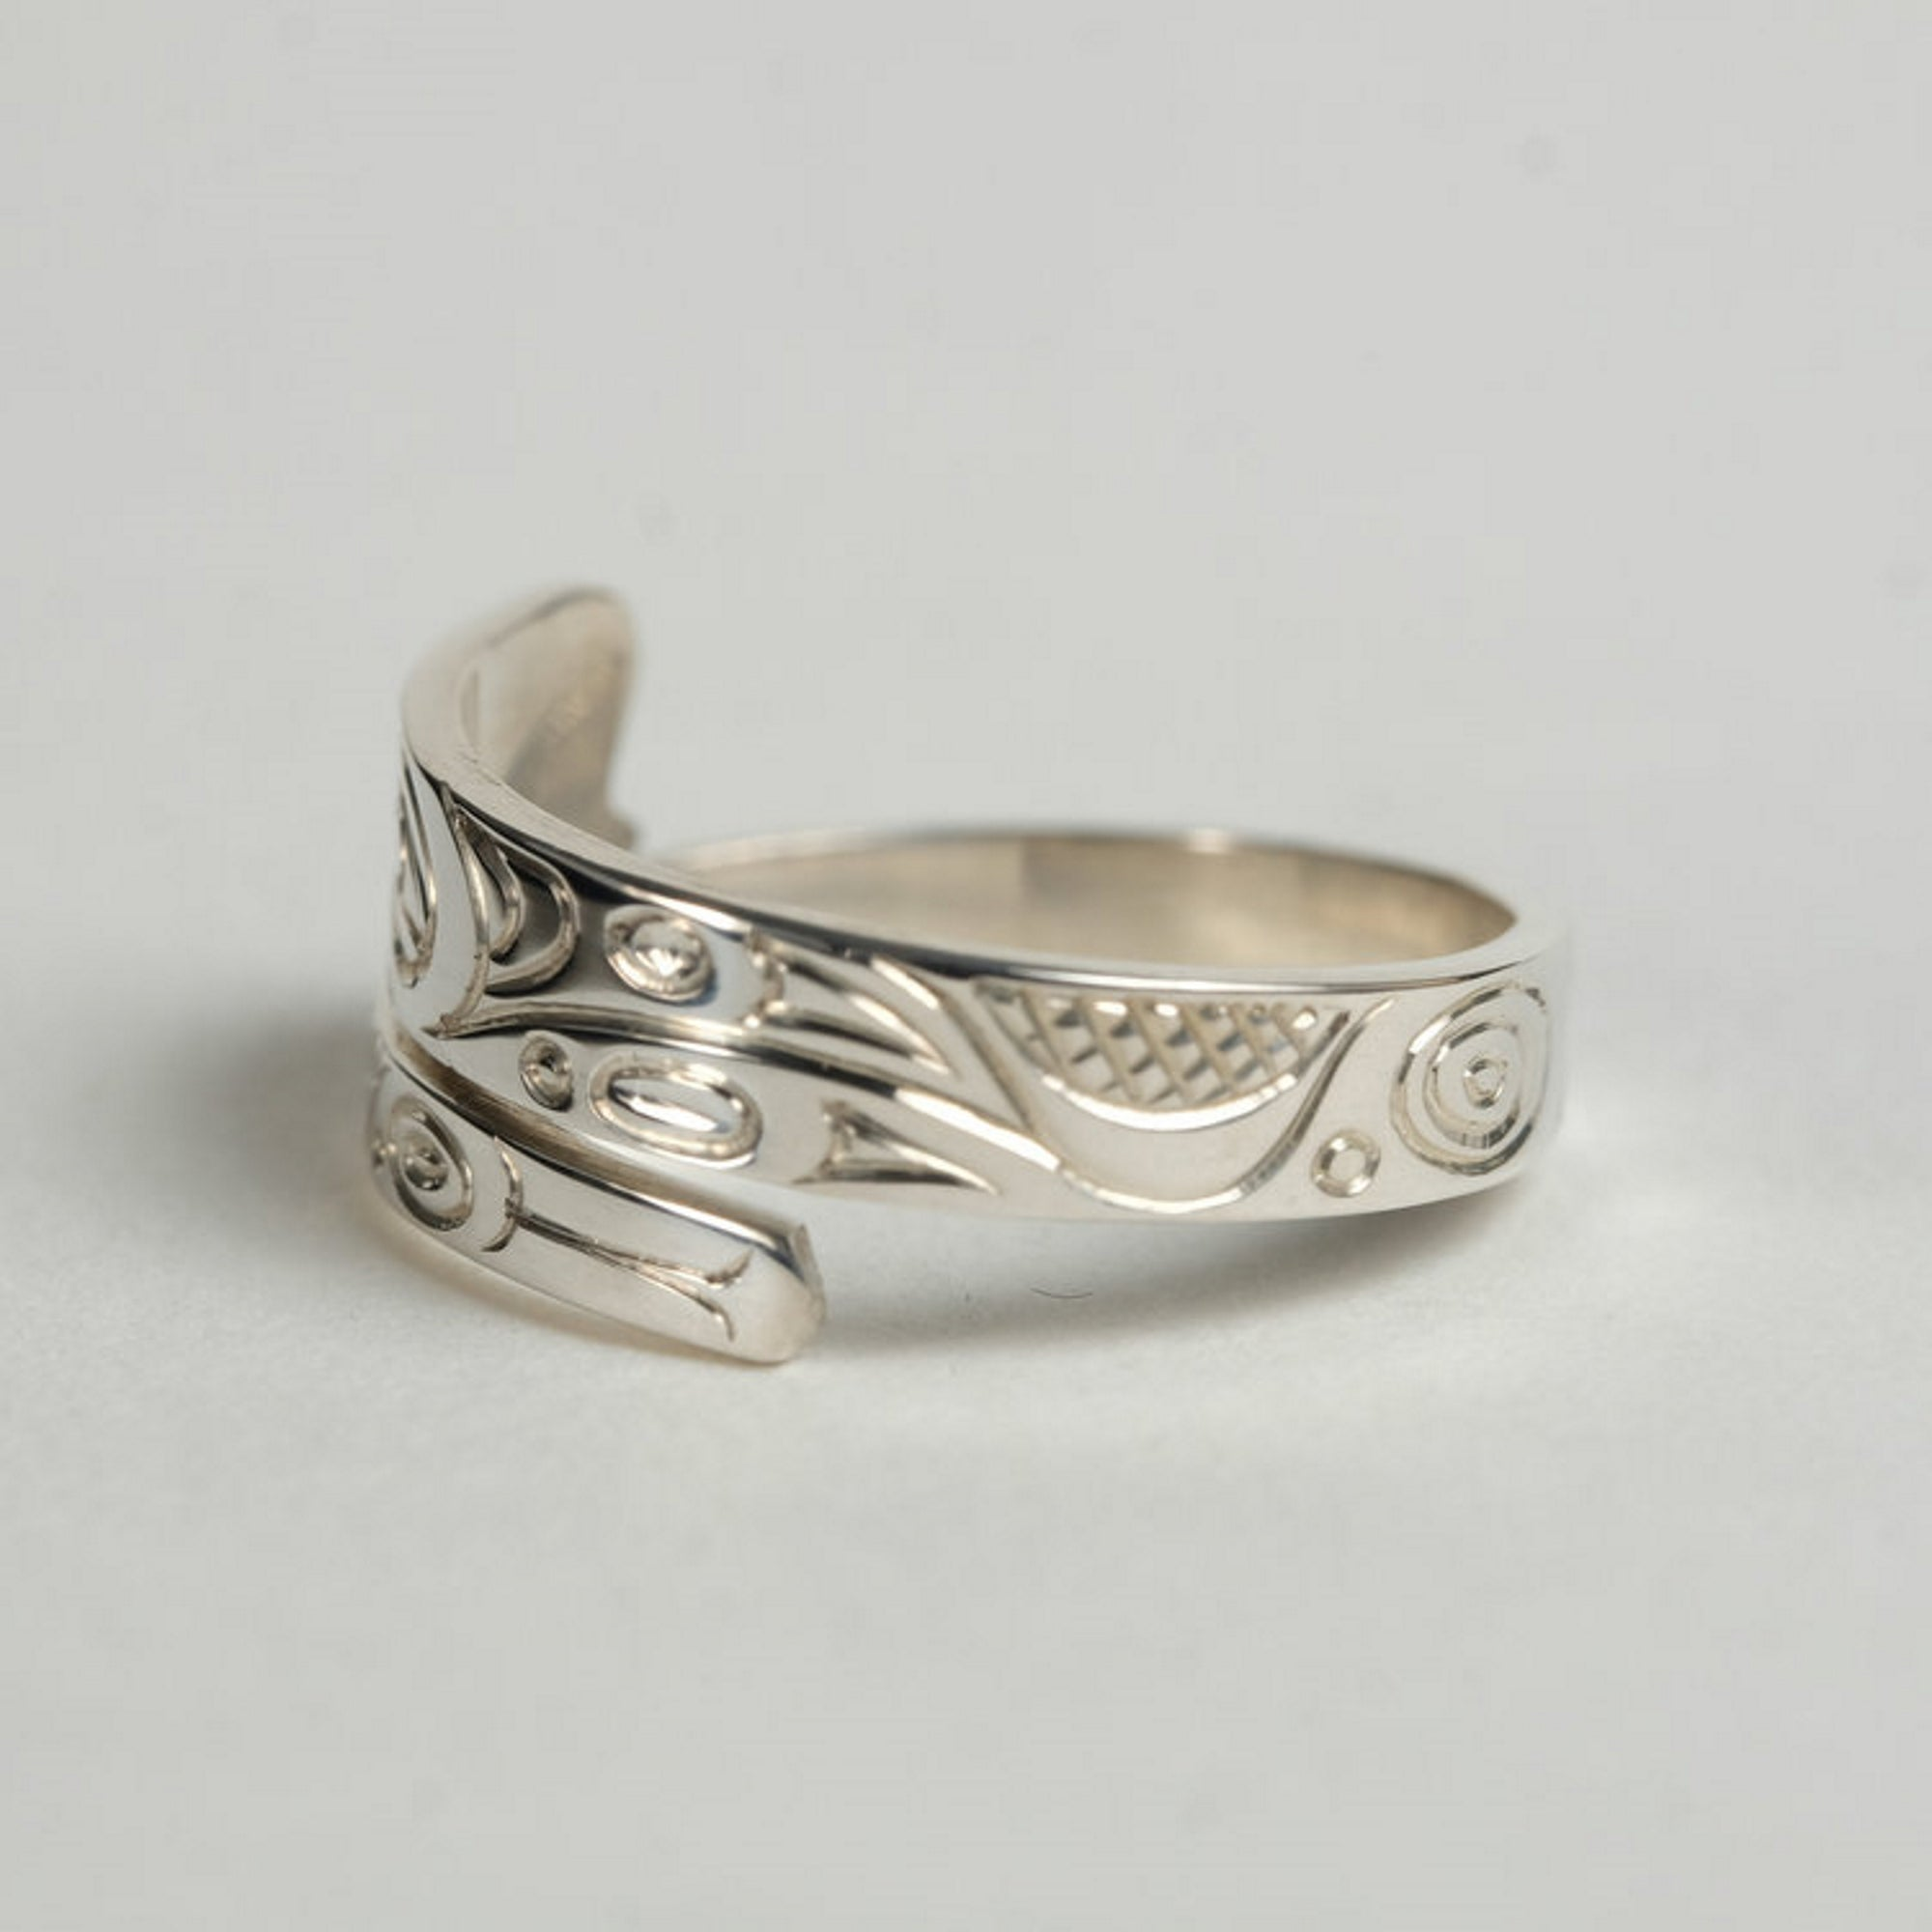 orca killer whale ring